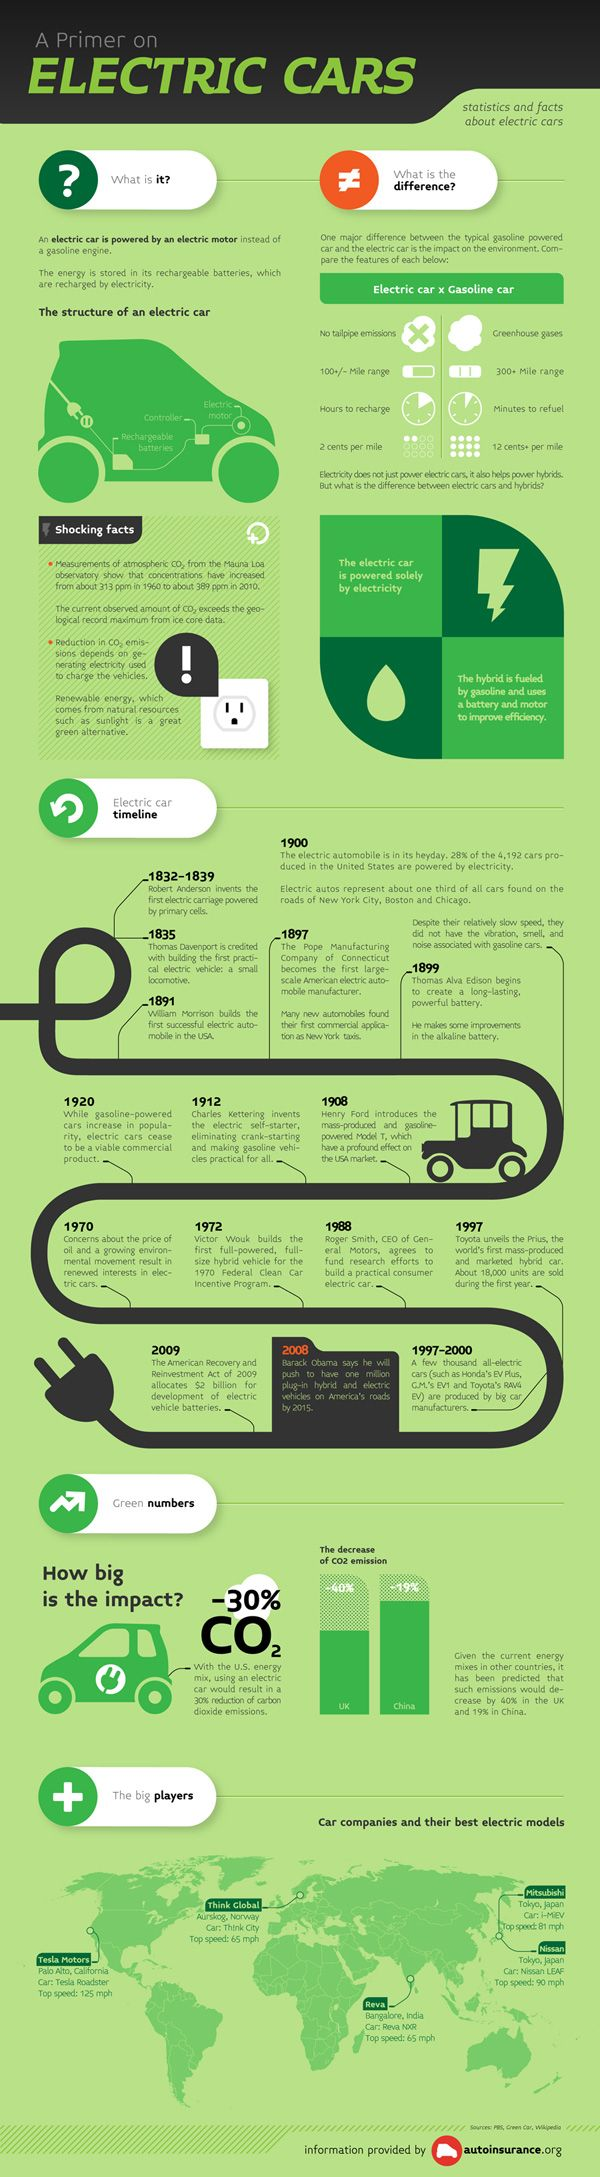 A Primer on Electric Cars